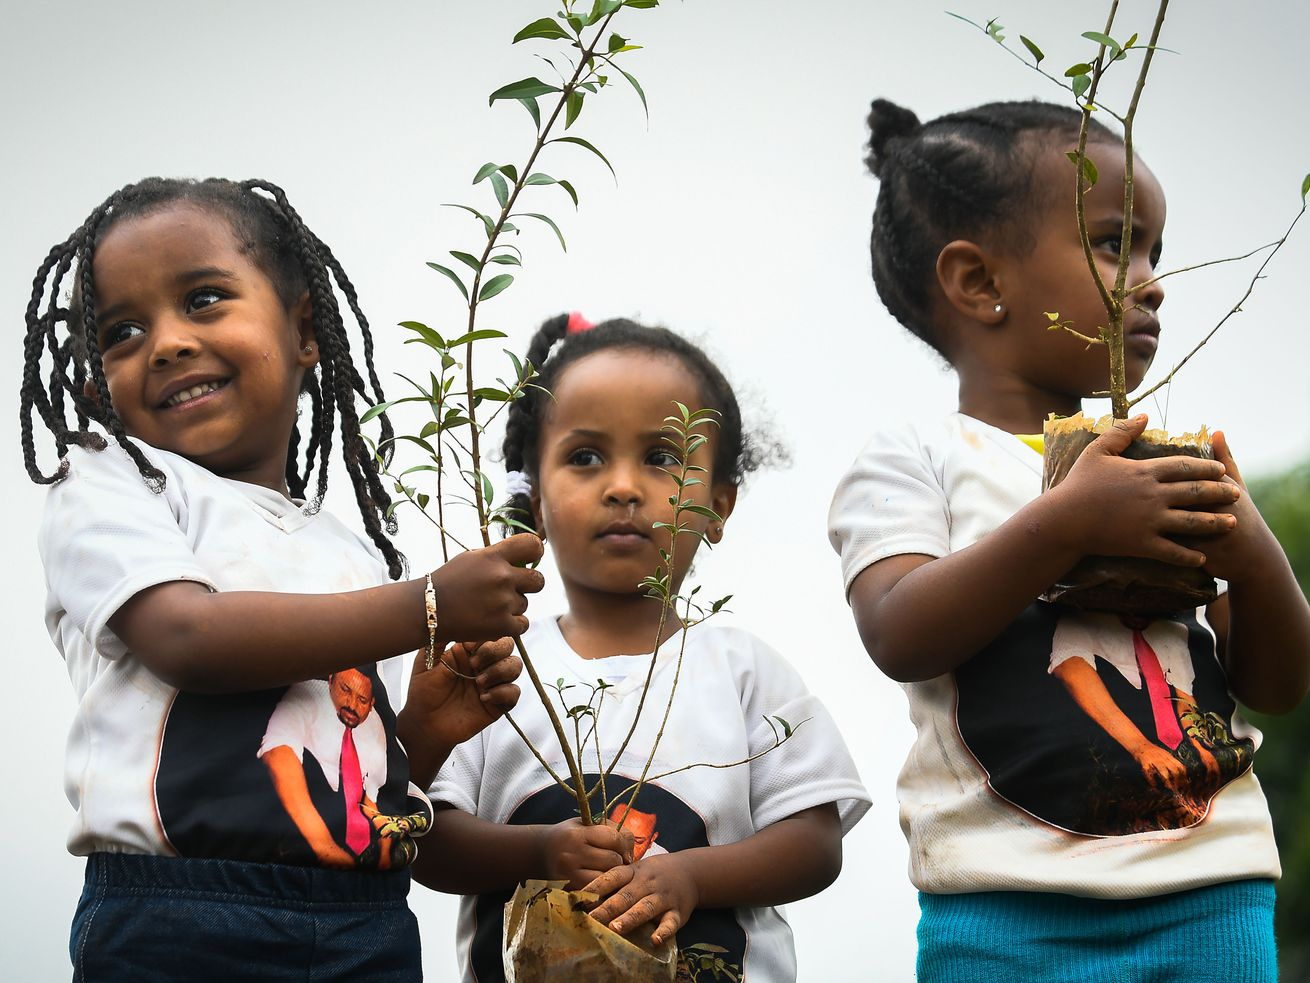 Young Ethiopian girls wearing shirts depicting Ethiopia's Prime Minister Abiy Ahmed hold tree saplings as part in a national tree-planting drive in the capital Addis Ababa.